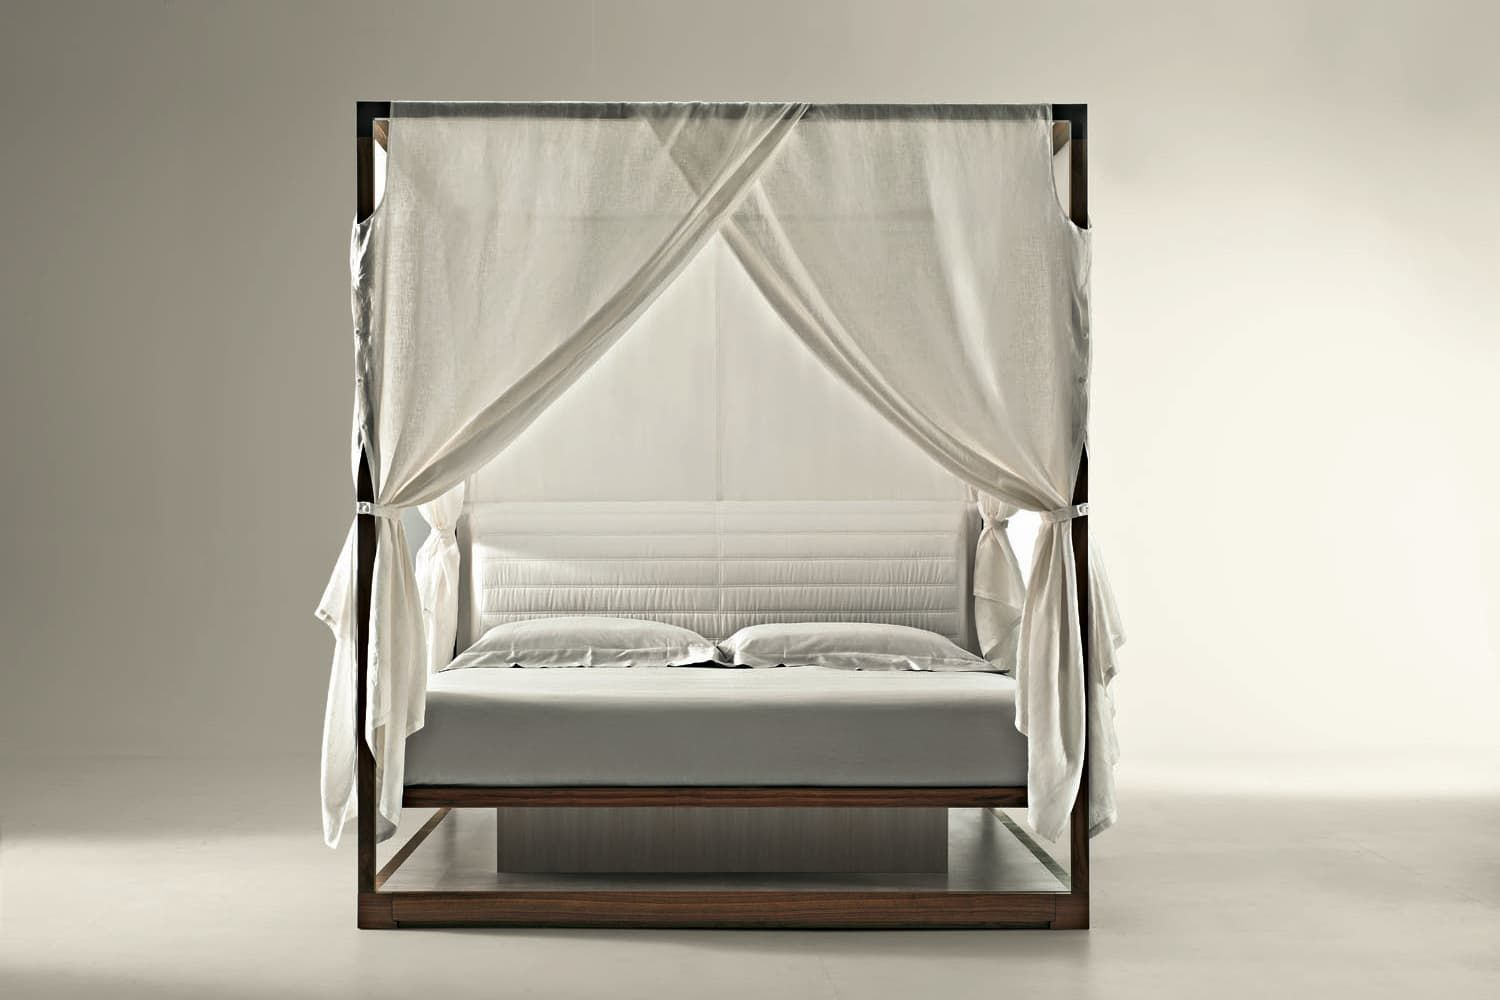 Ira Canopy Bed by Chi Wing Lo for Canopy bed